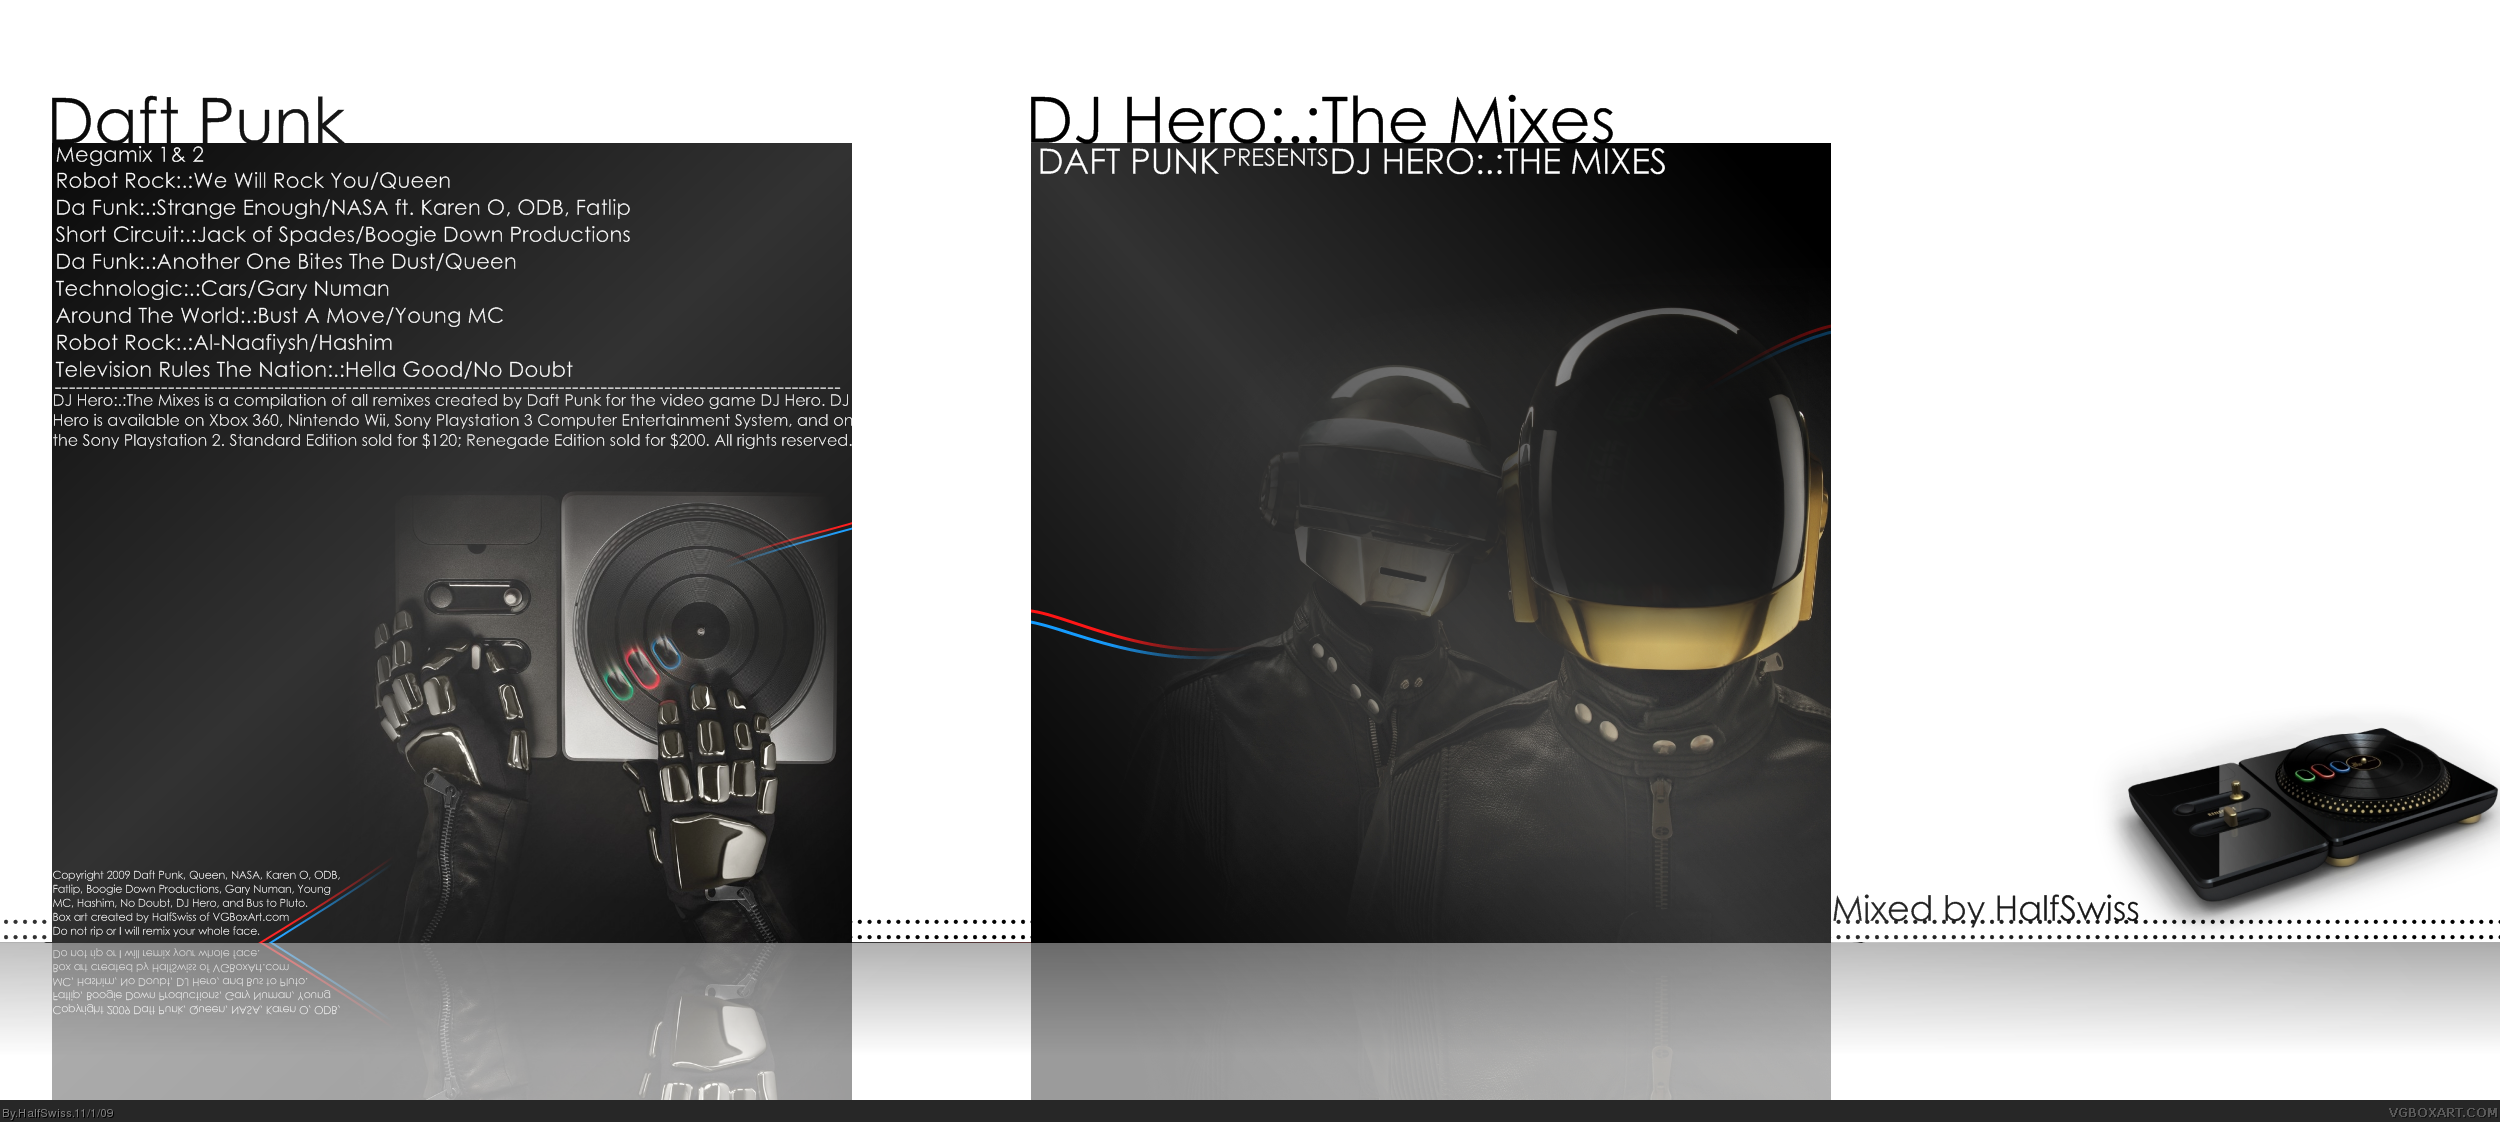 Daft Punk: DJ Hero:.:The Mixes box cover